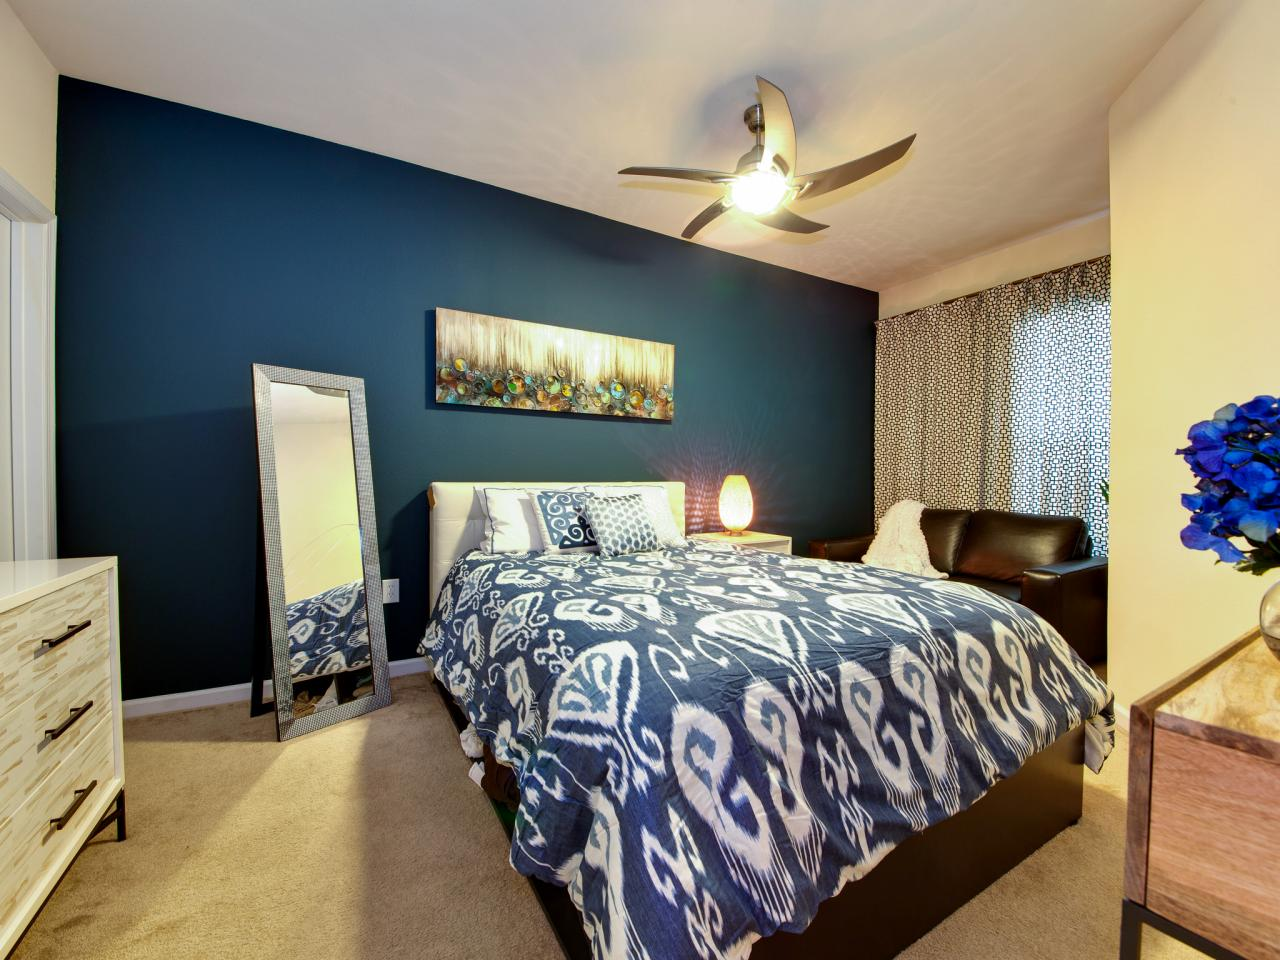 From boring to stylish bachelor 39 s pad ebonee bachman hgtv Modern bedroom blue